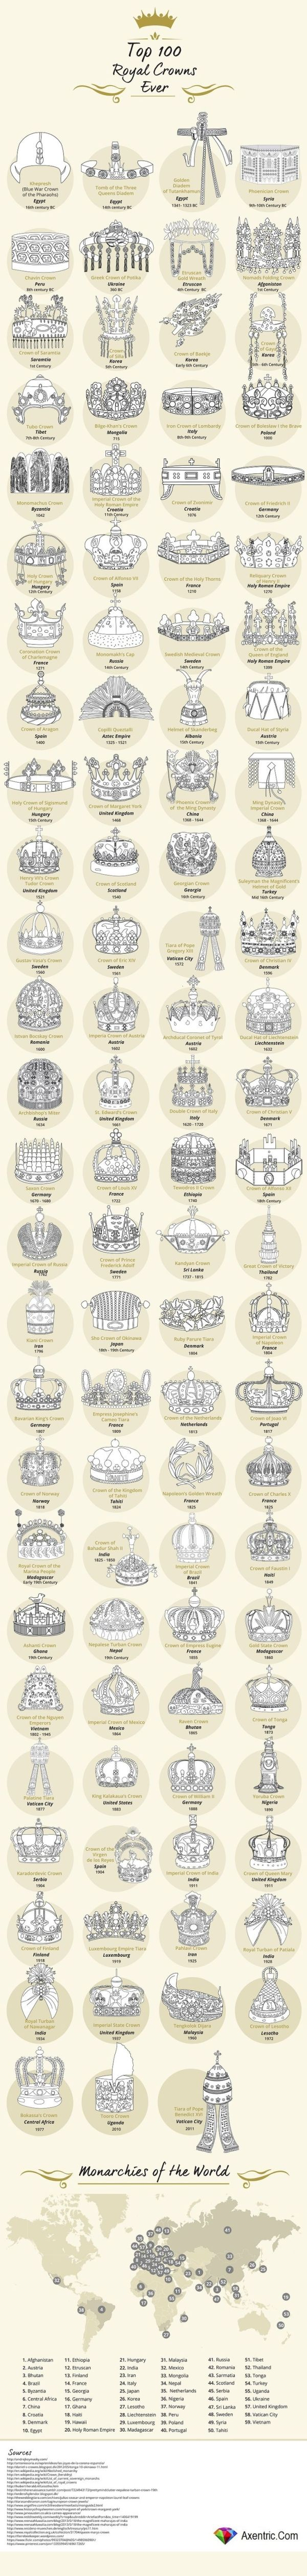 Top 100 Royal Crowns and Crown Jewels from the last 3500 years! by hattie